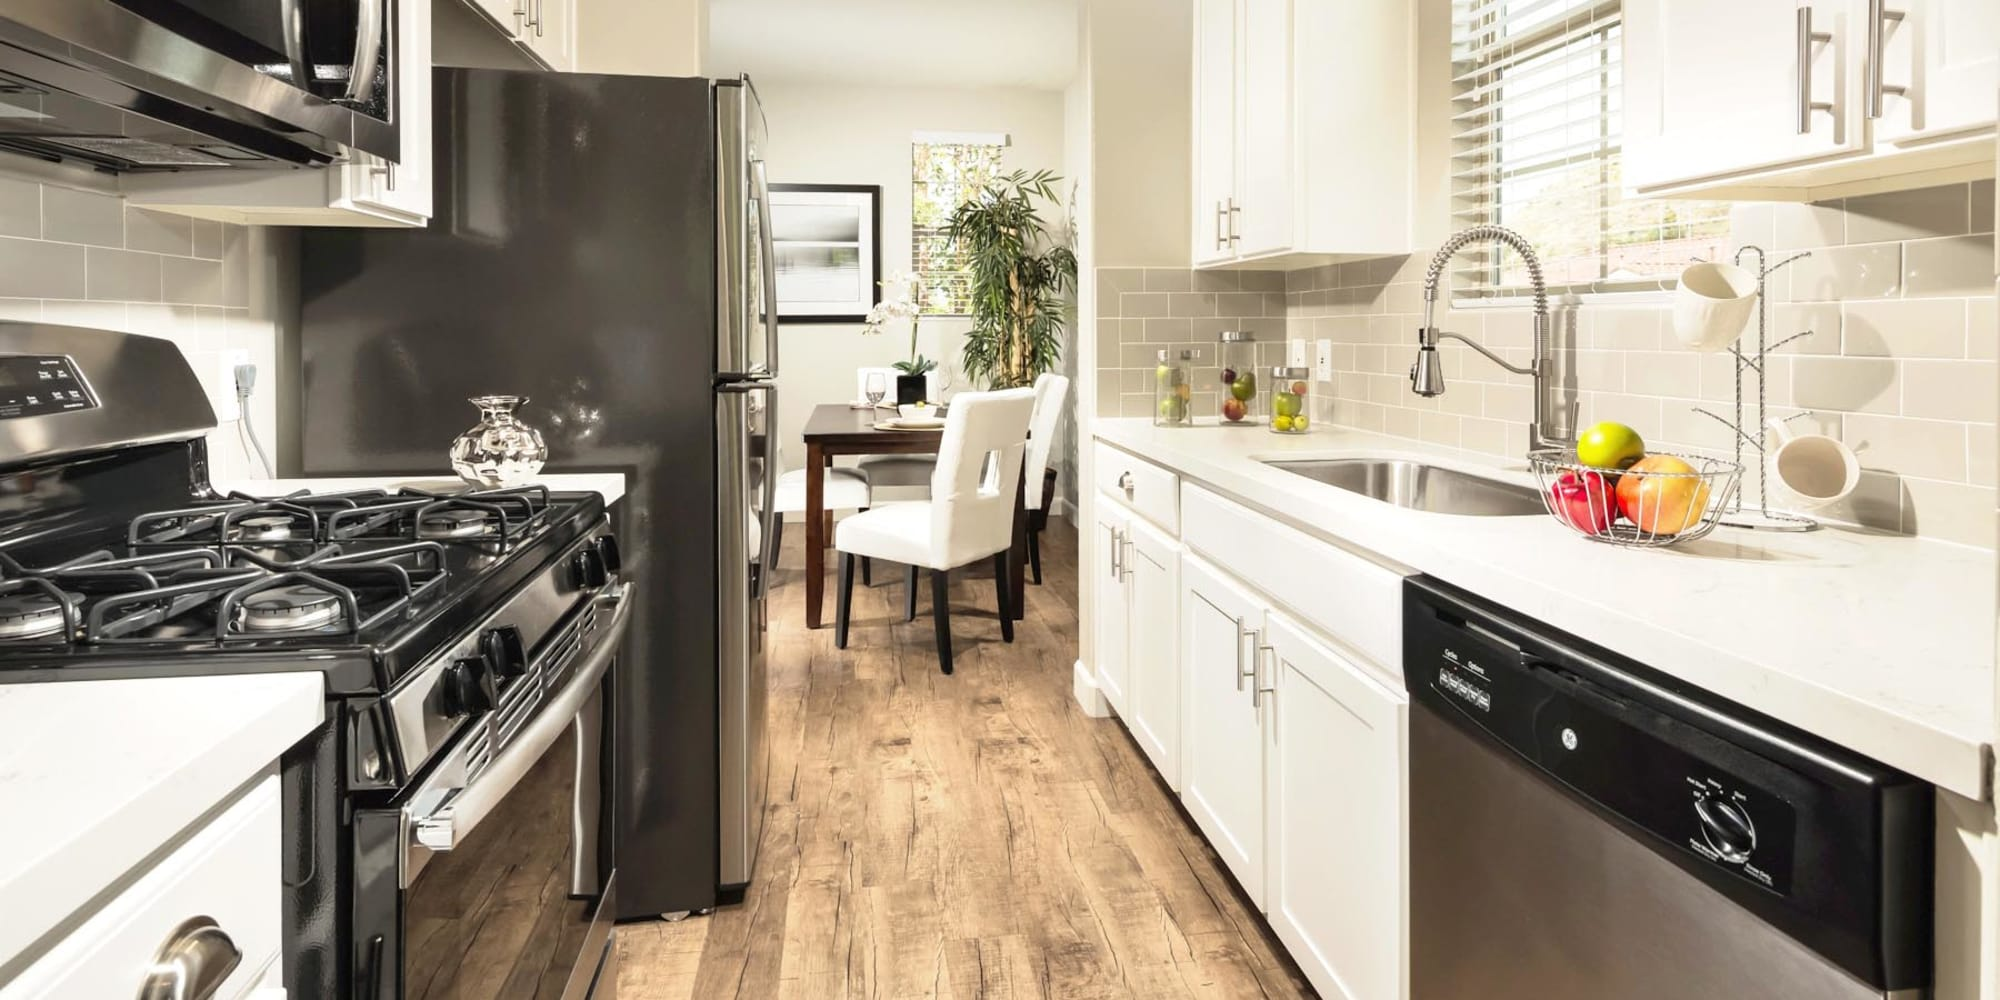 Bright white cabinetry and hardwood flooring in a model home's kitchen at Mission Hills in Camarillo, California